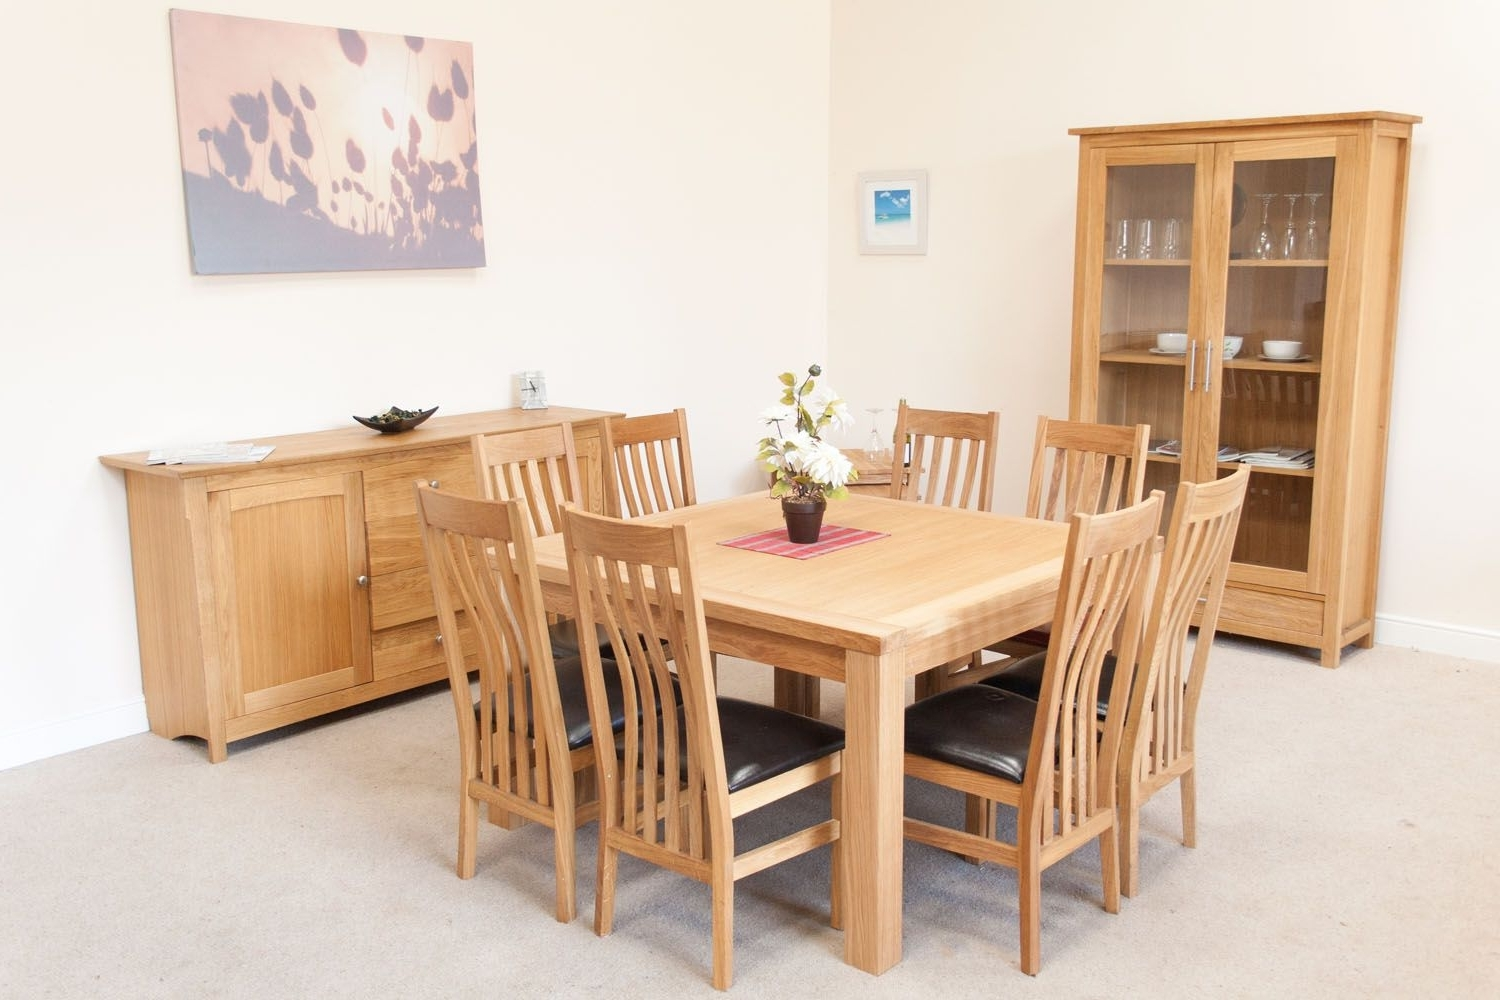 Best And Newest Minsk Large Square Oak Dining Table 8 Seater Within Oak Dining Tables 8 Chairs (Gallery 2 of 25)